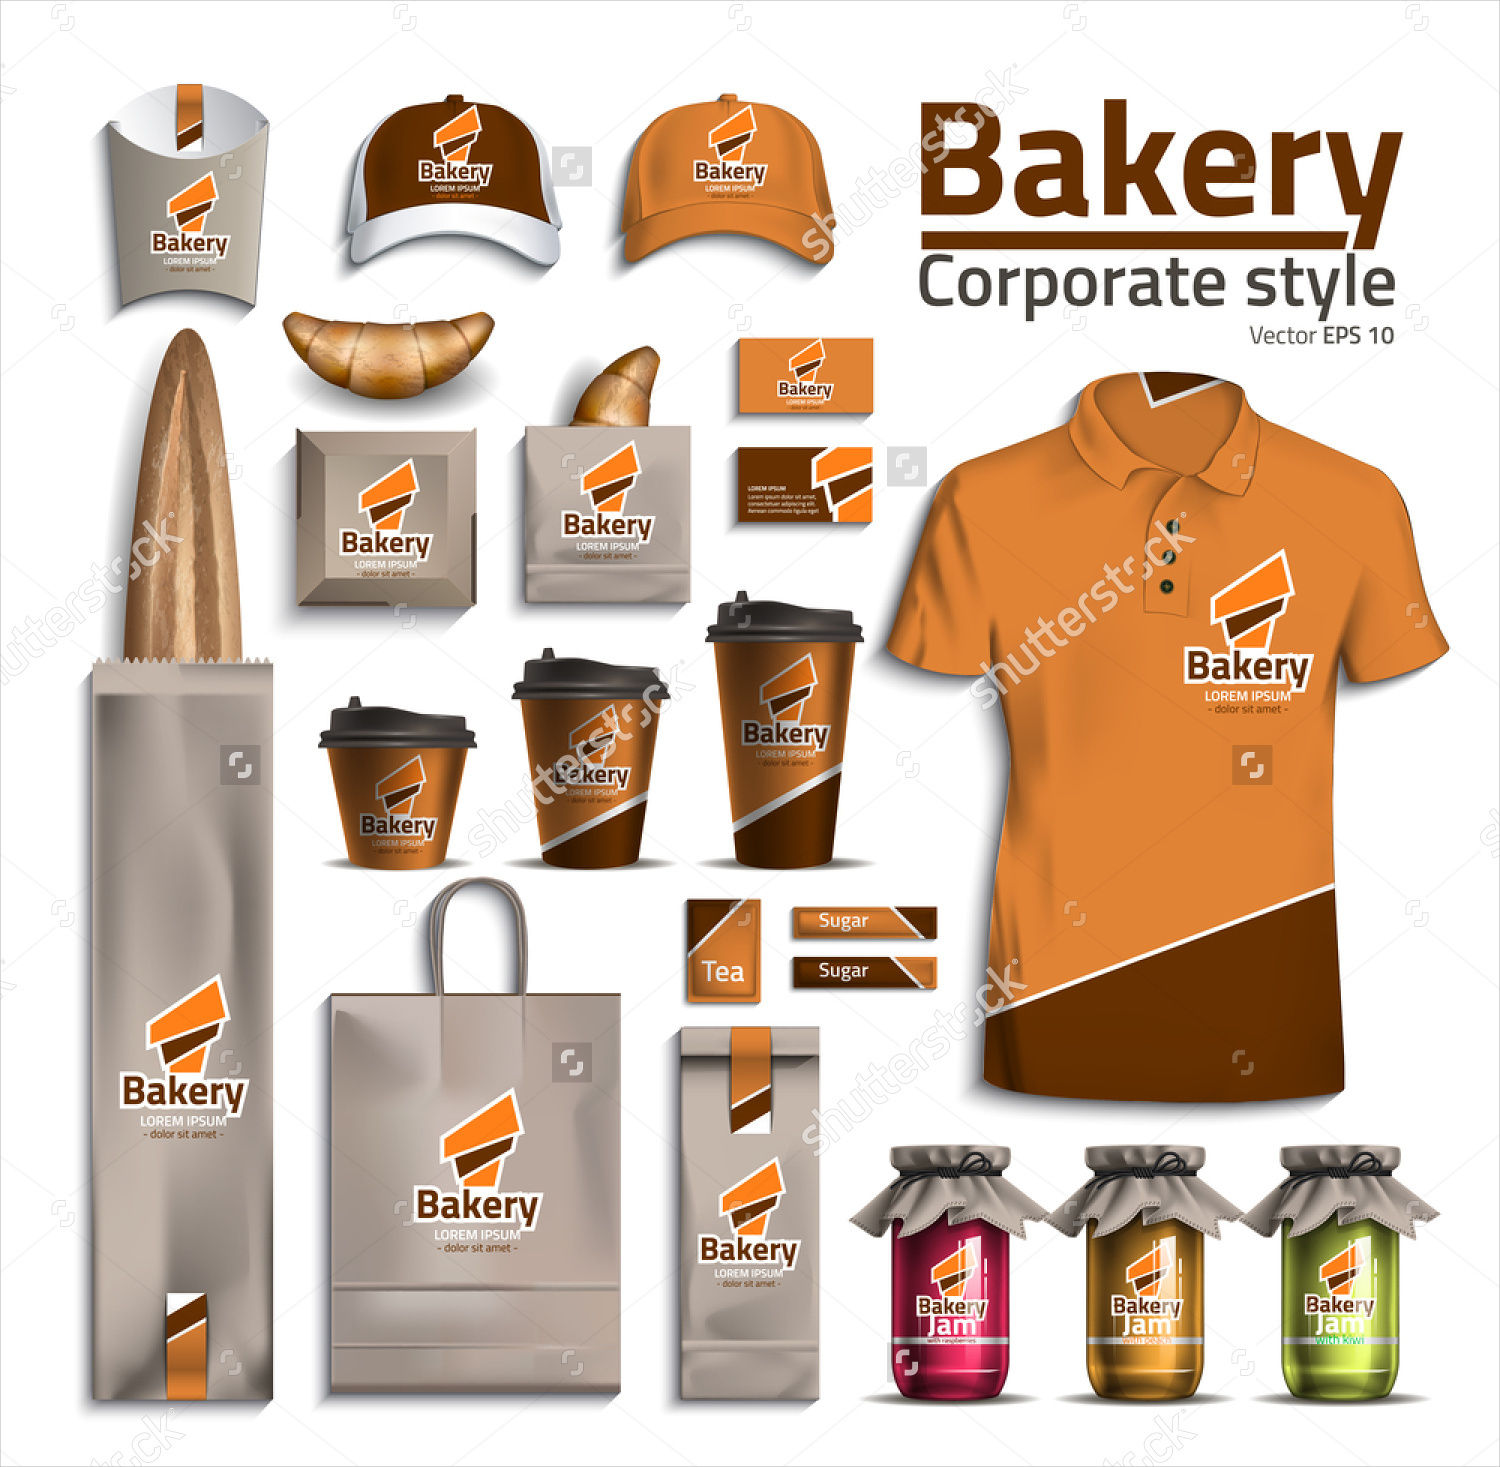 corporate bakery style packaging design